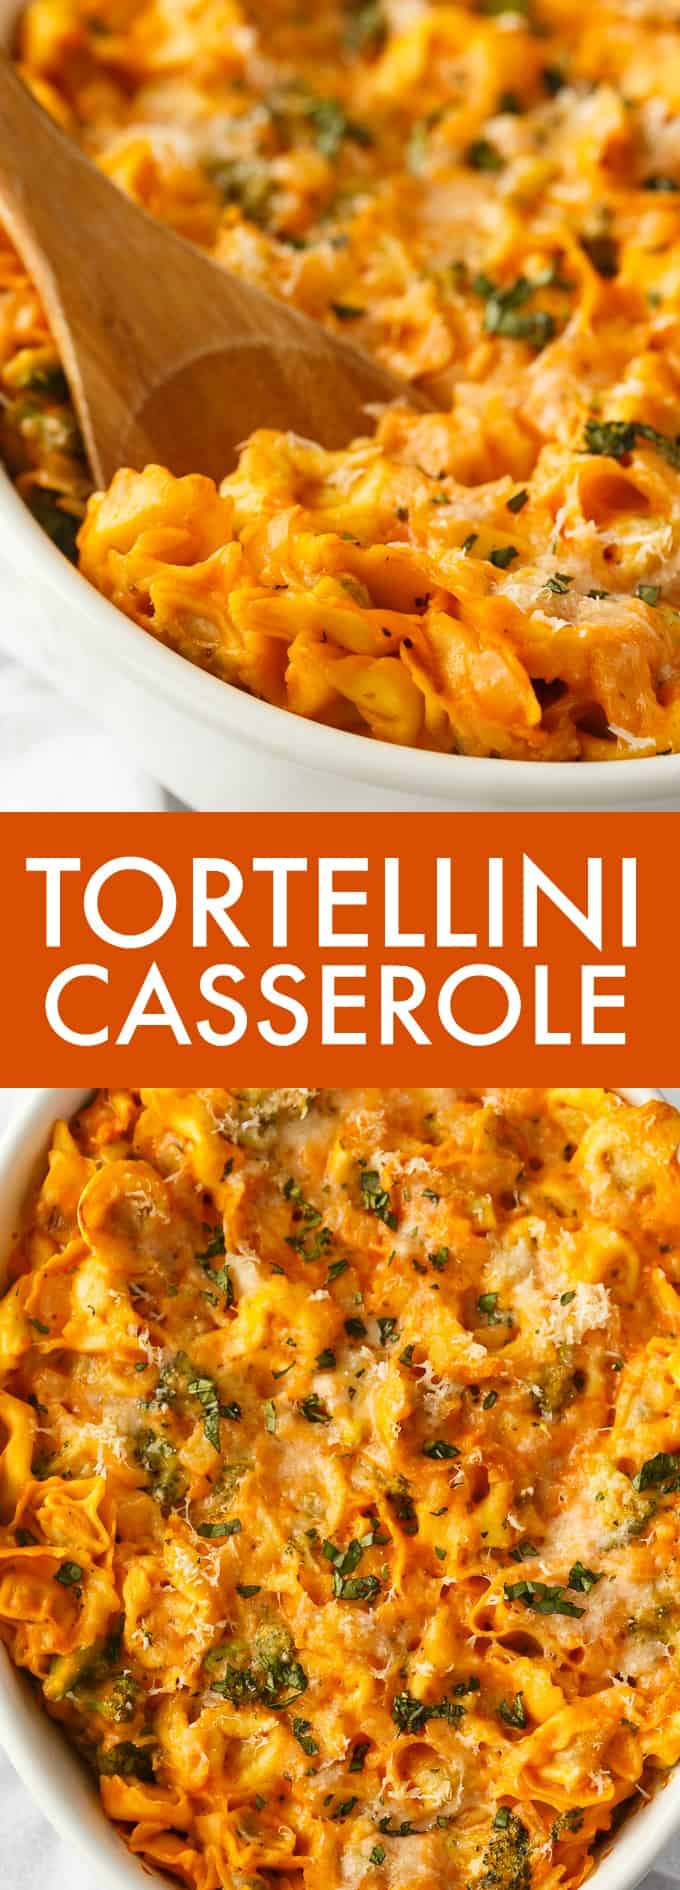 Tortellini Casserole - Hearty and delicious. This easy pasta casserole has beef tortellini smothered in a savory rose sauce, veggies and loads of cheese.